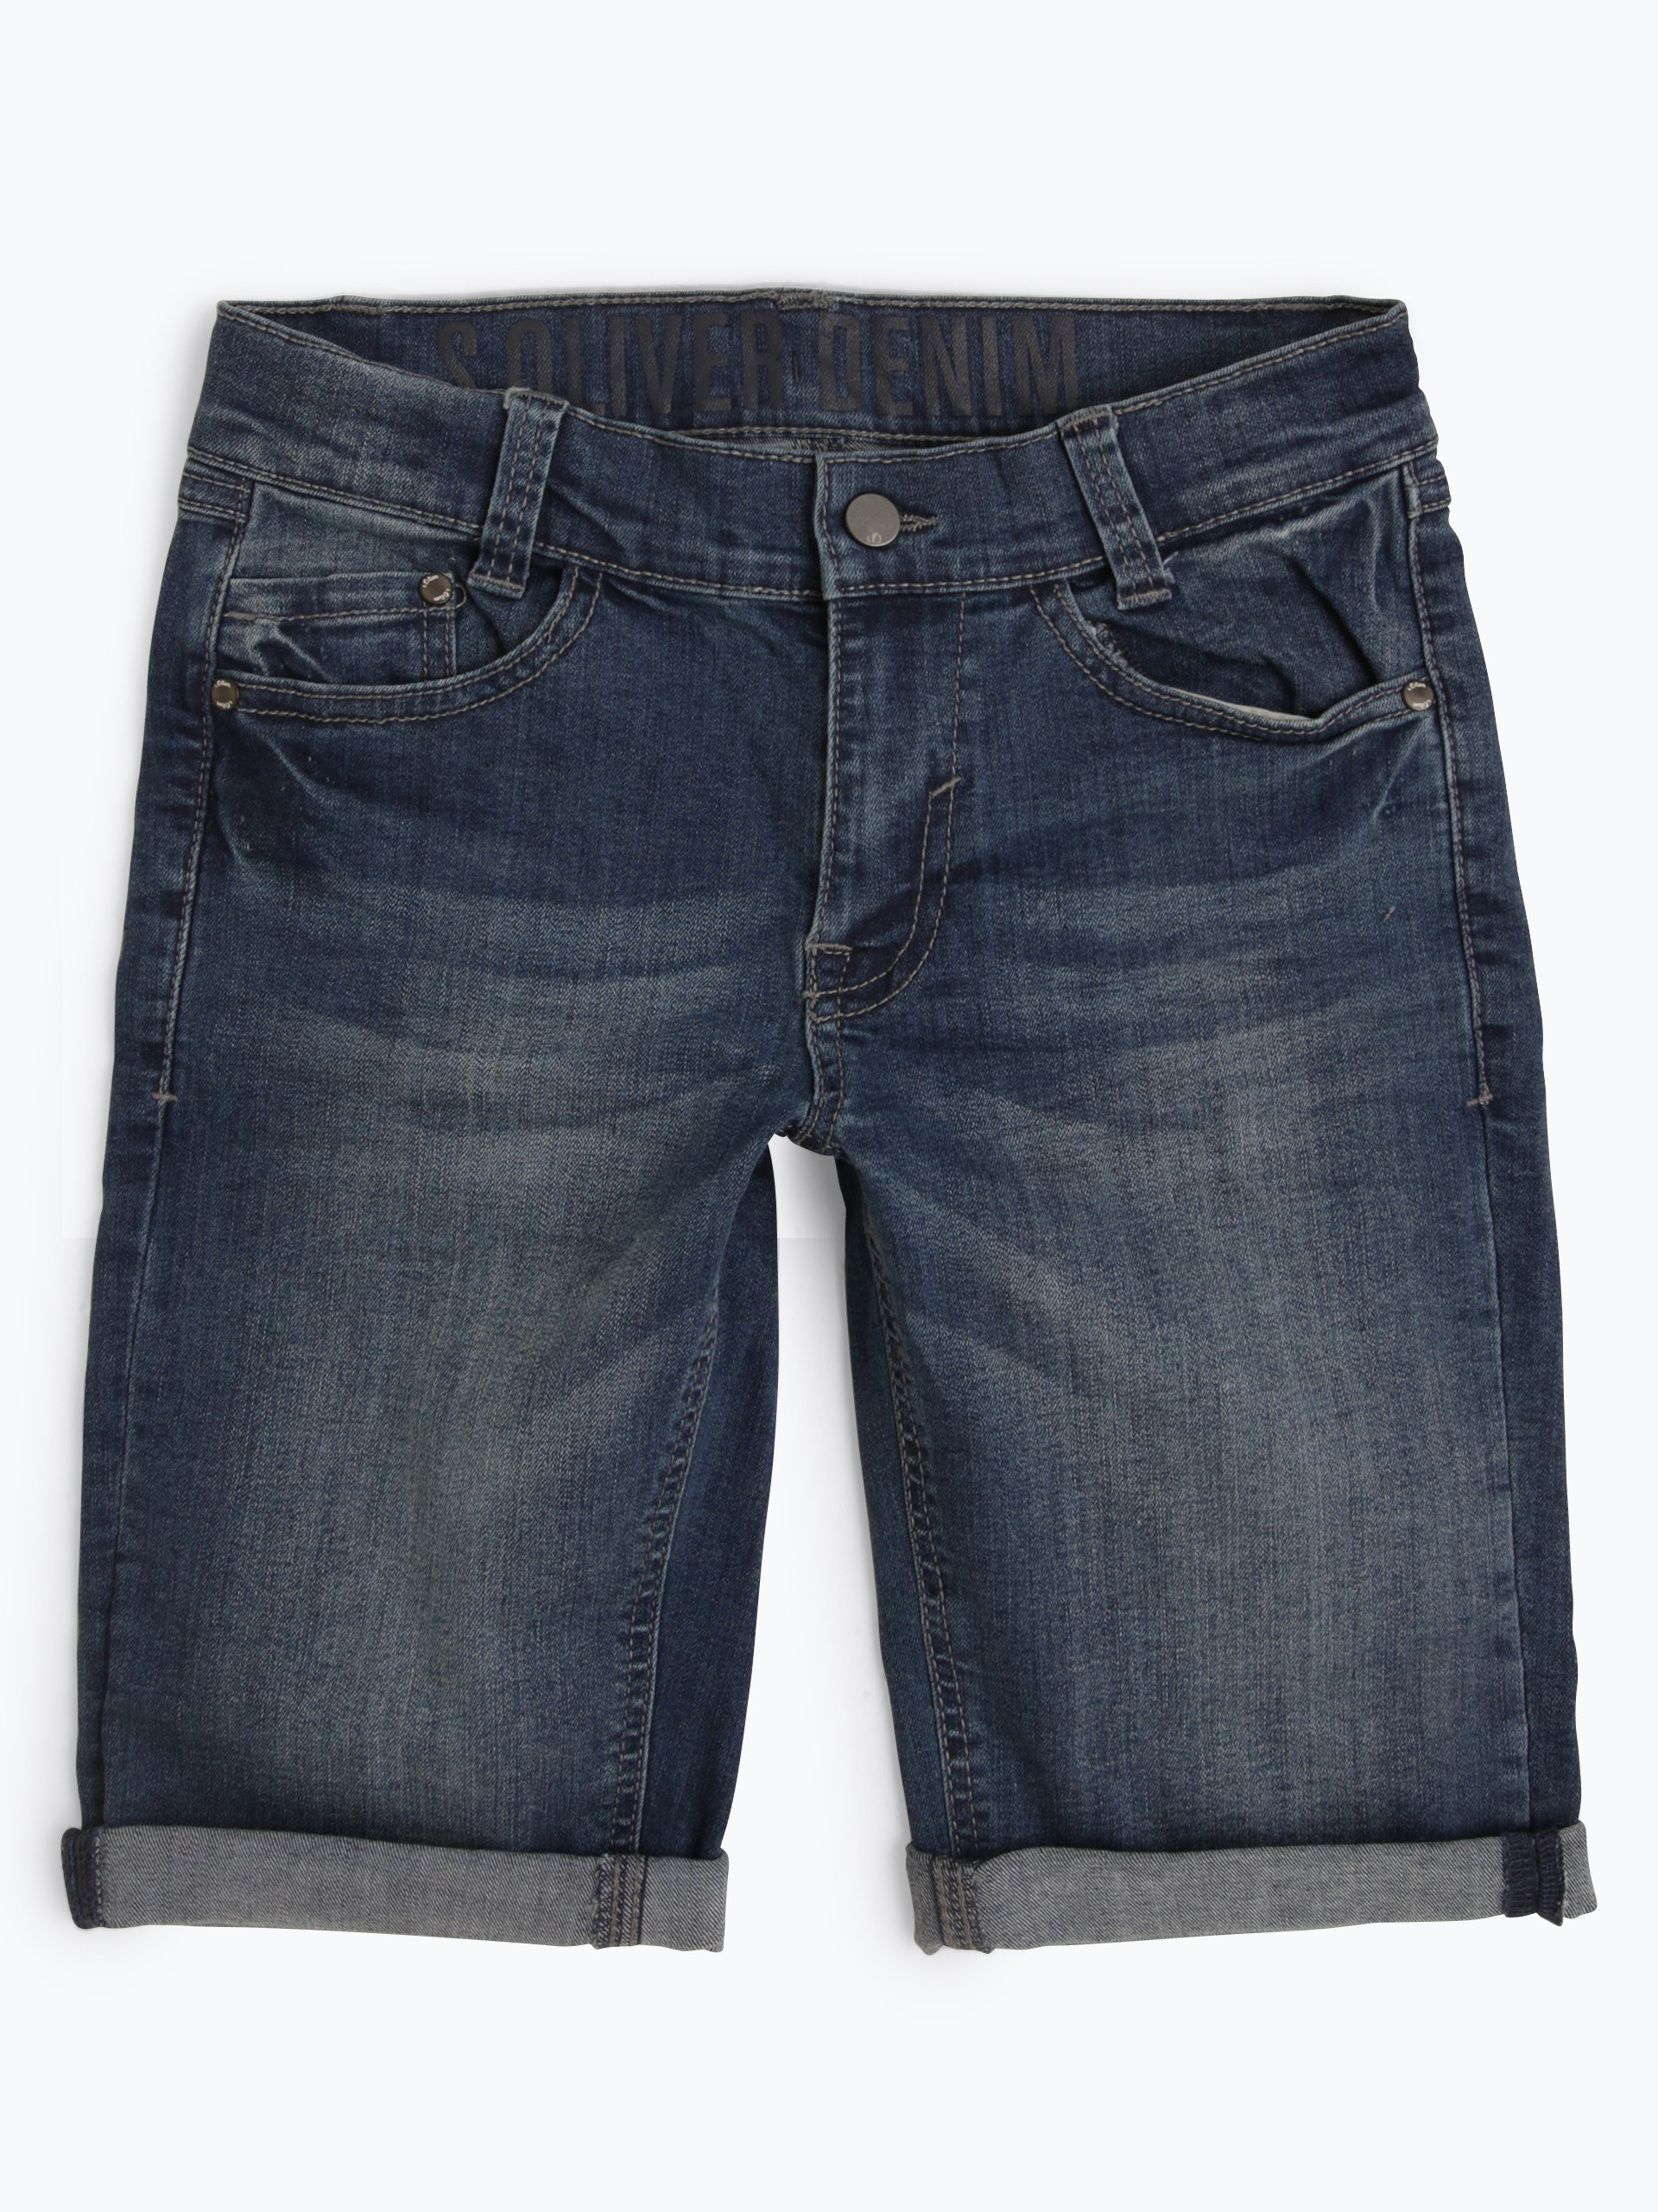 s.Oliver Casual Jungen Jeansshorts